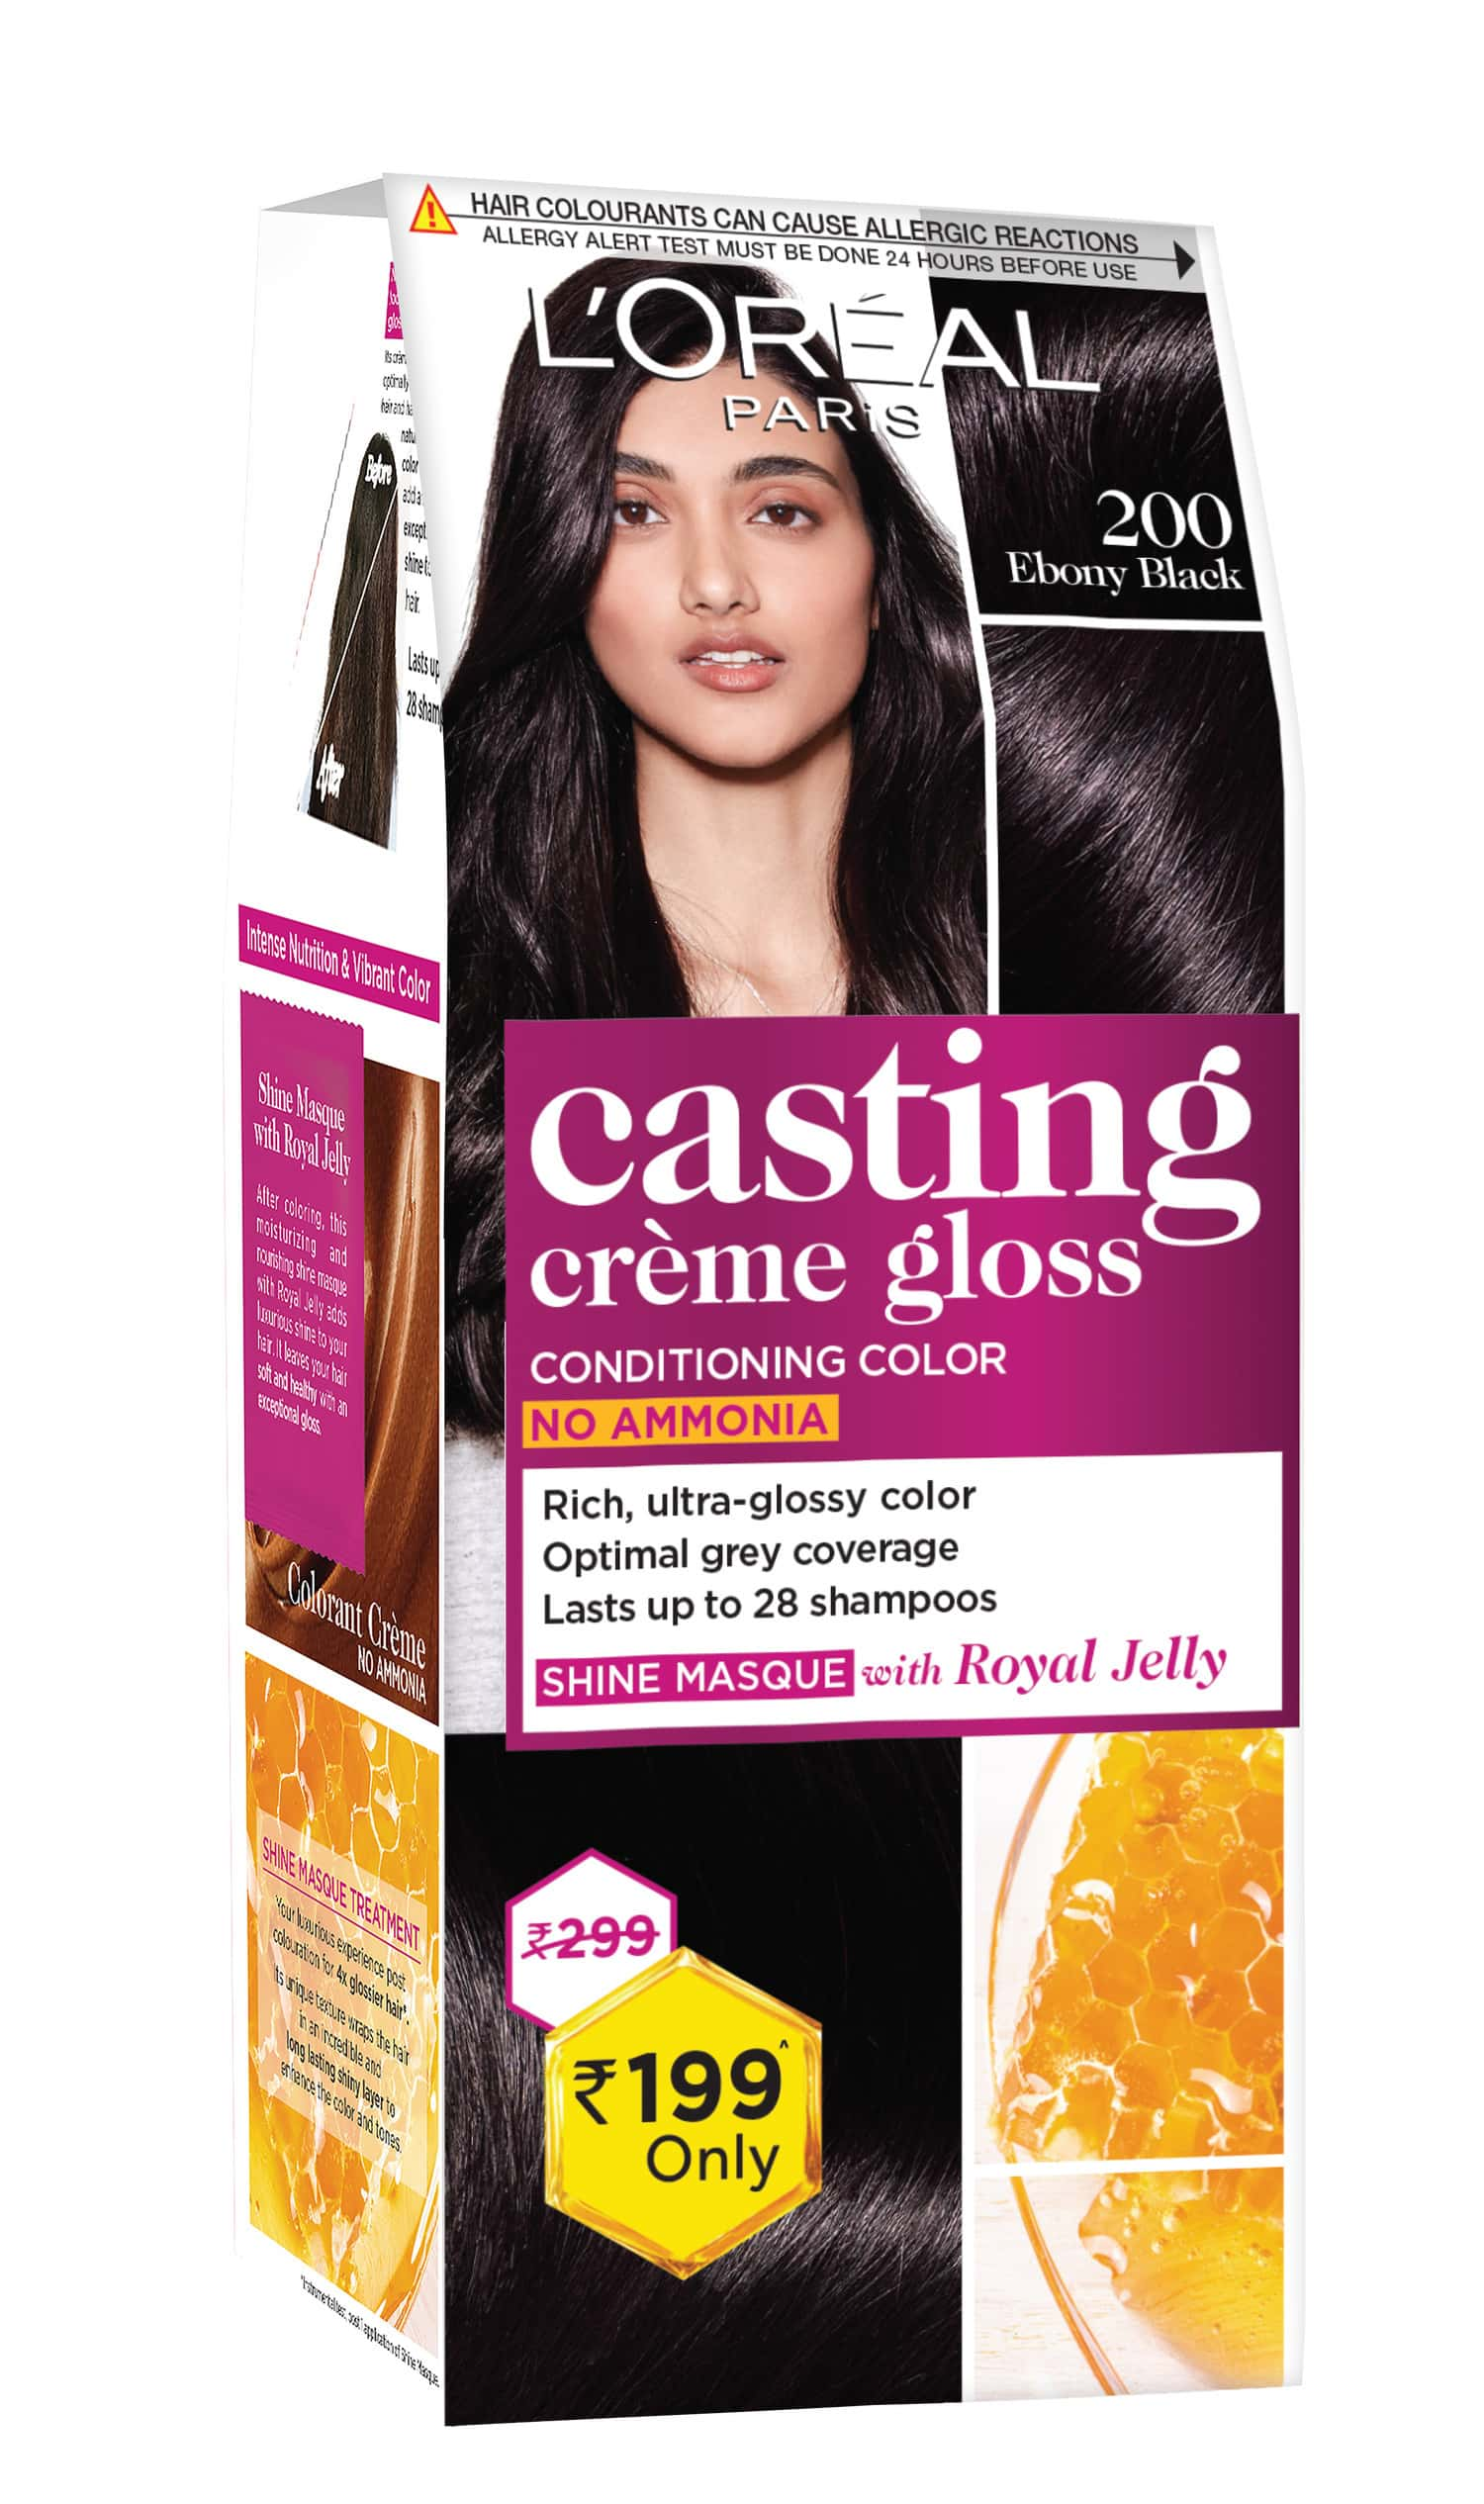 L'oreal Paris Casting Creme Gloss Small Pack 200 Ebony Black Hair Color Box Of 45 G